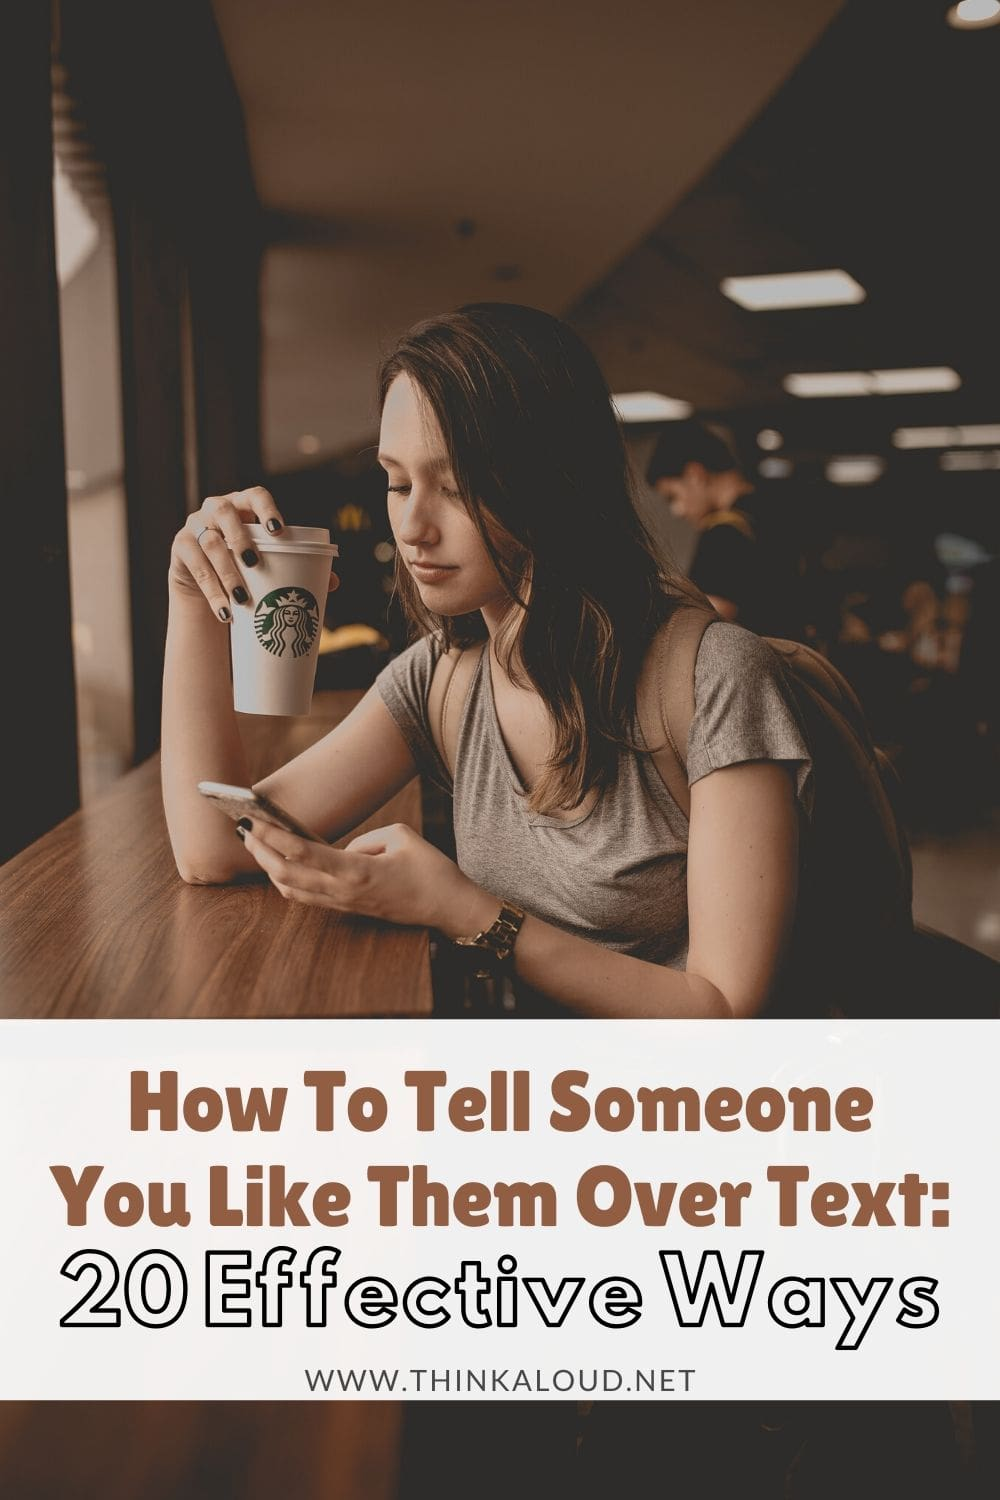 How To Tell Someone You Like Them Over Text_ 20 Effective Ways